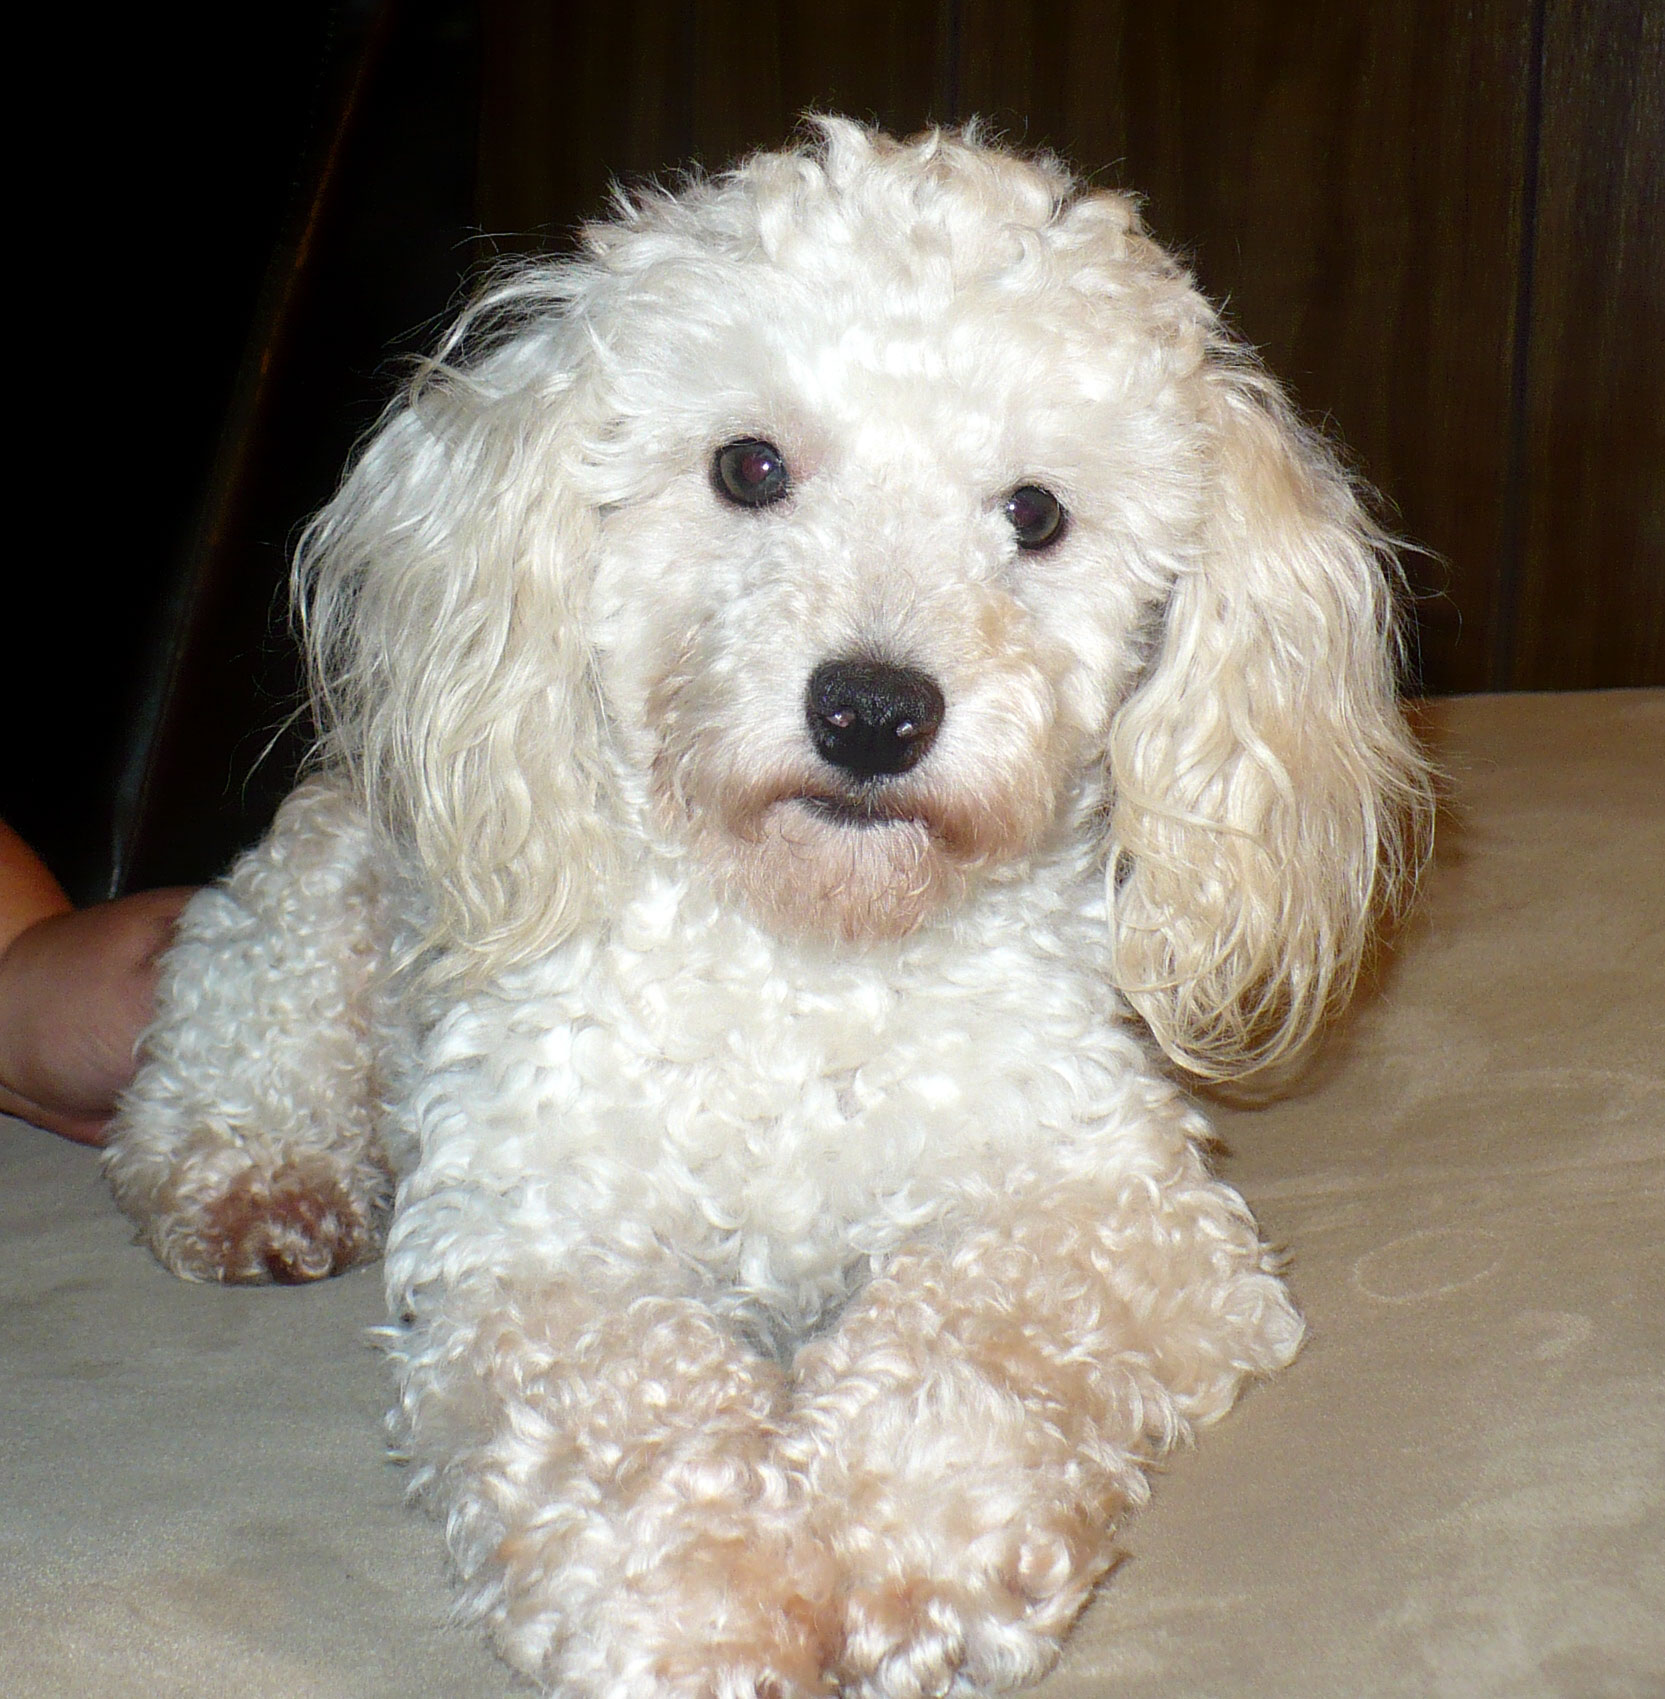 The Poodle Or Poodle Dogs Breeds Pets